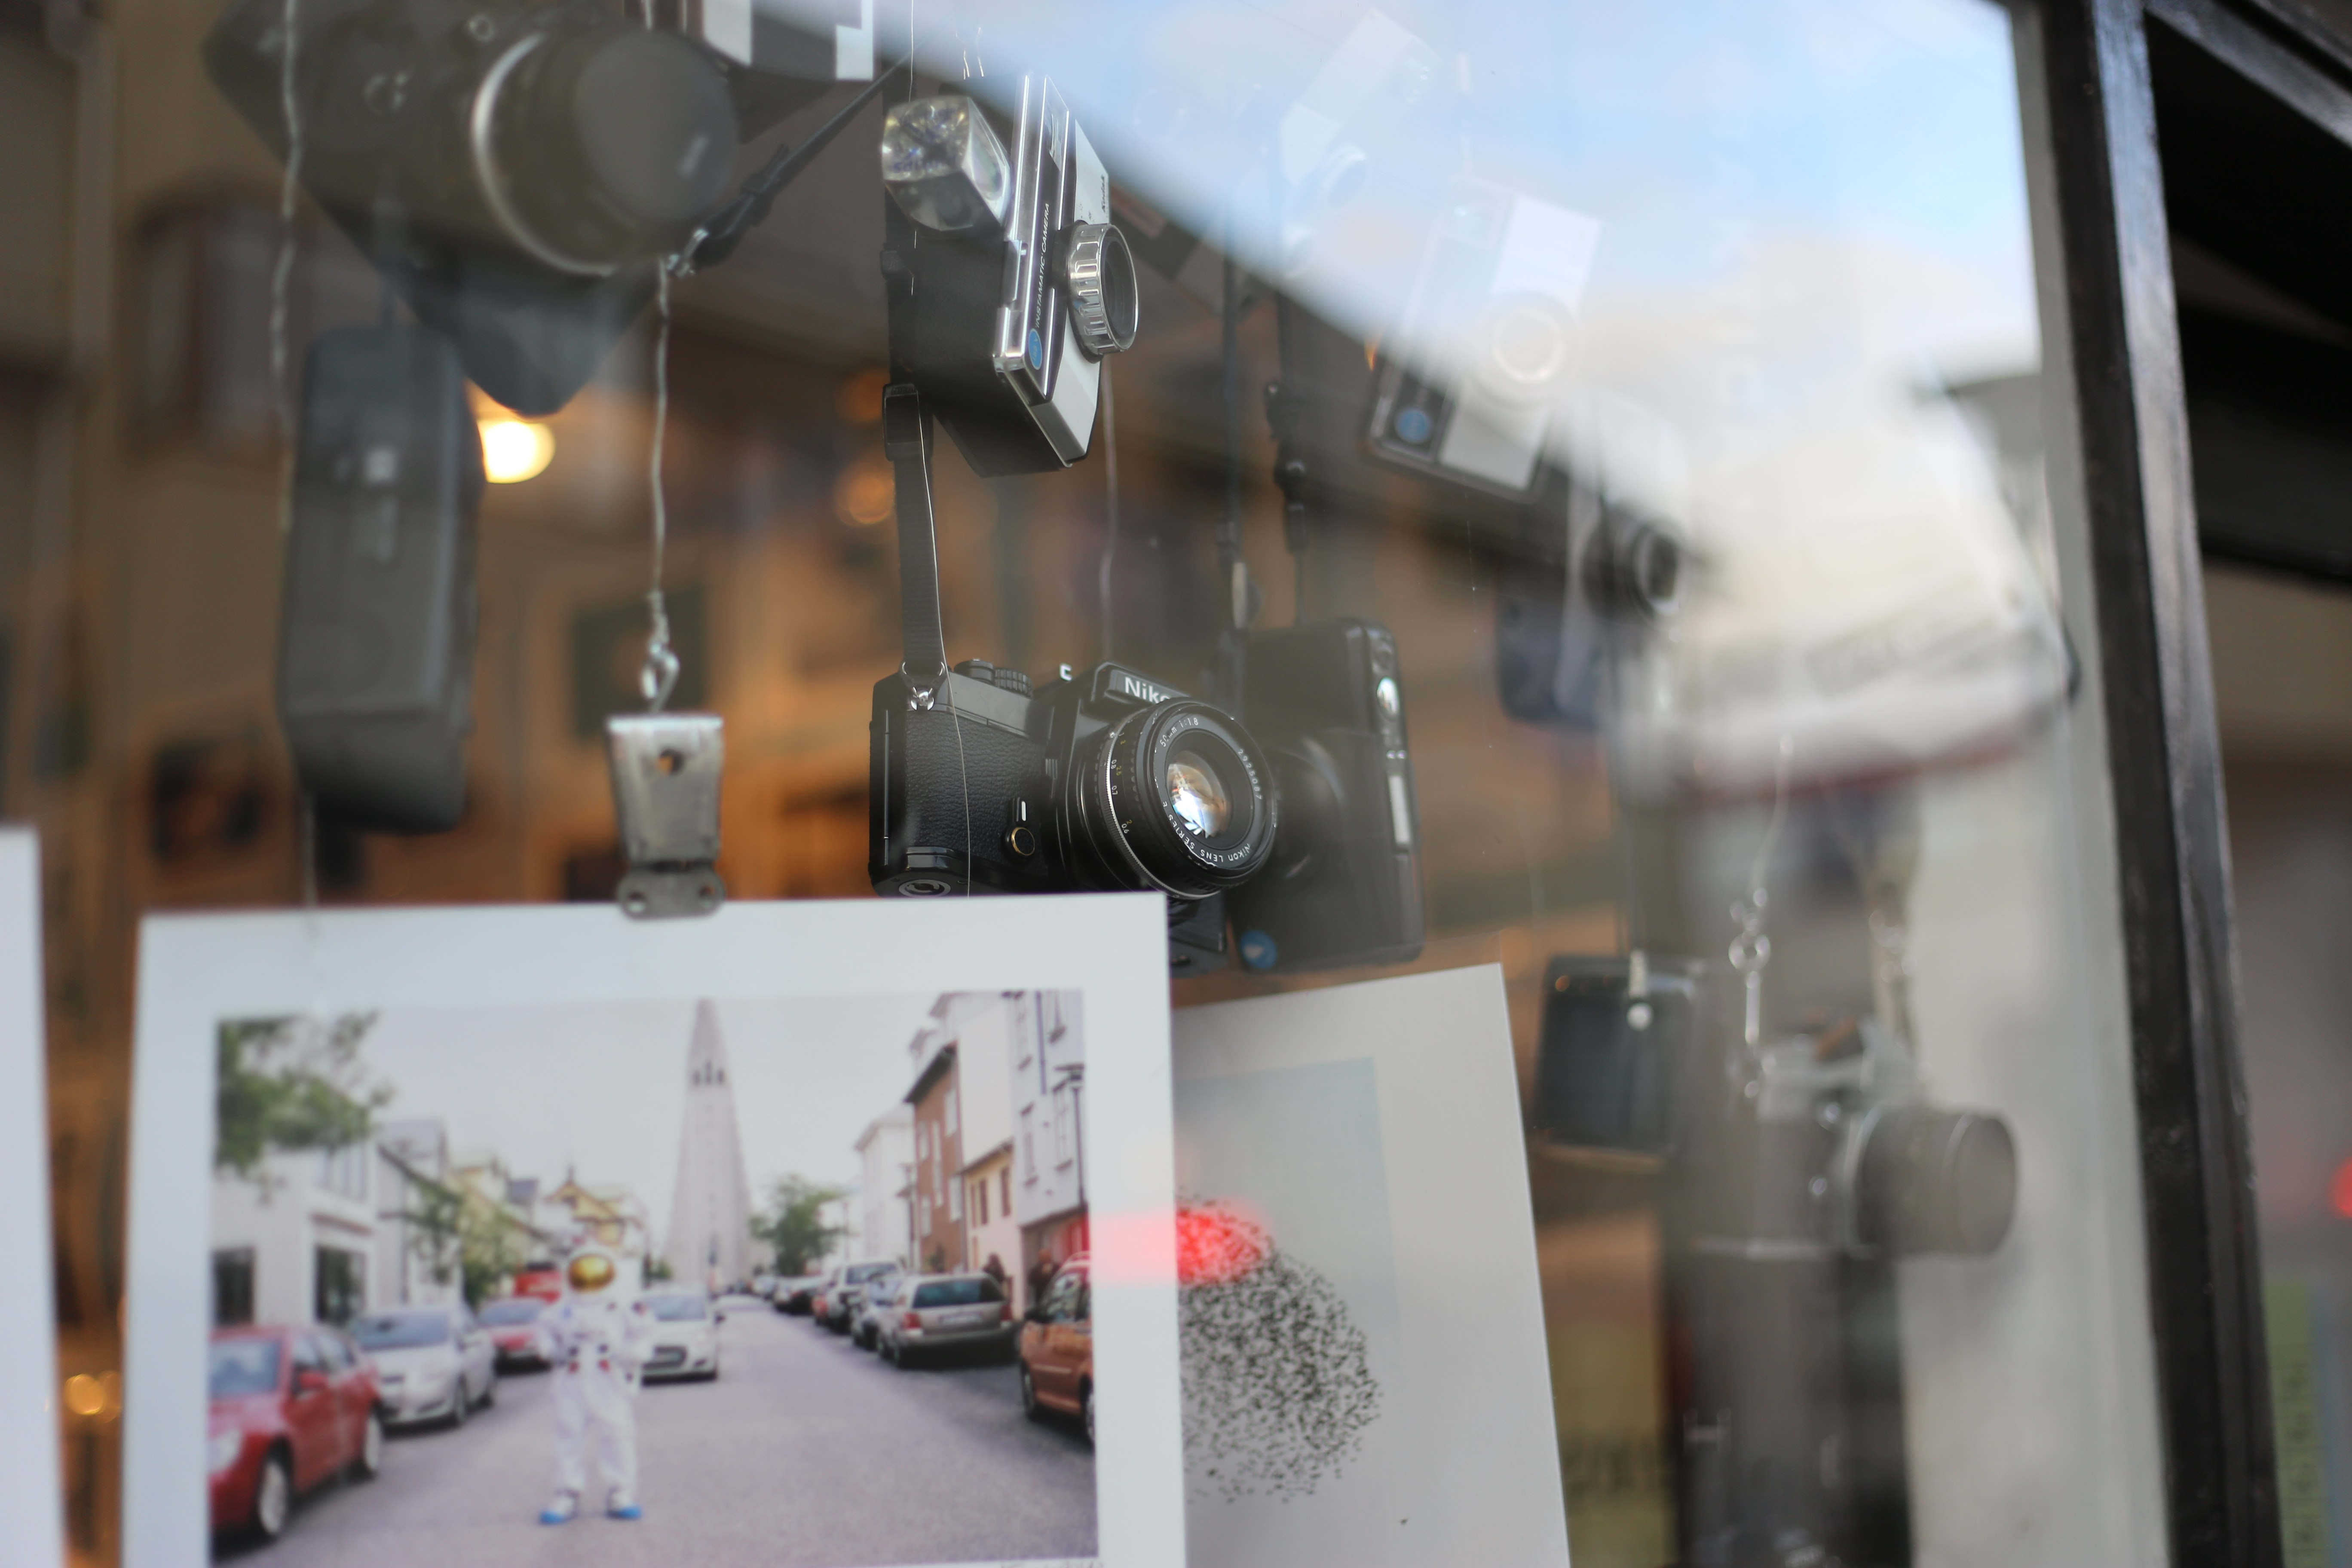 Vintage cameras and pictures hanging in window display with reflection